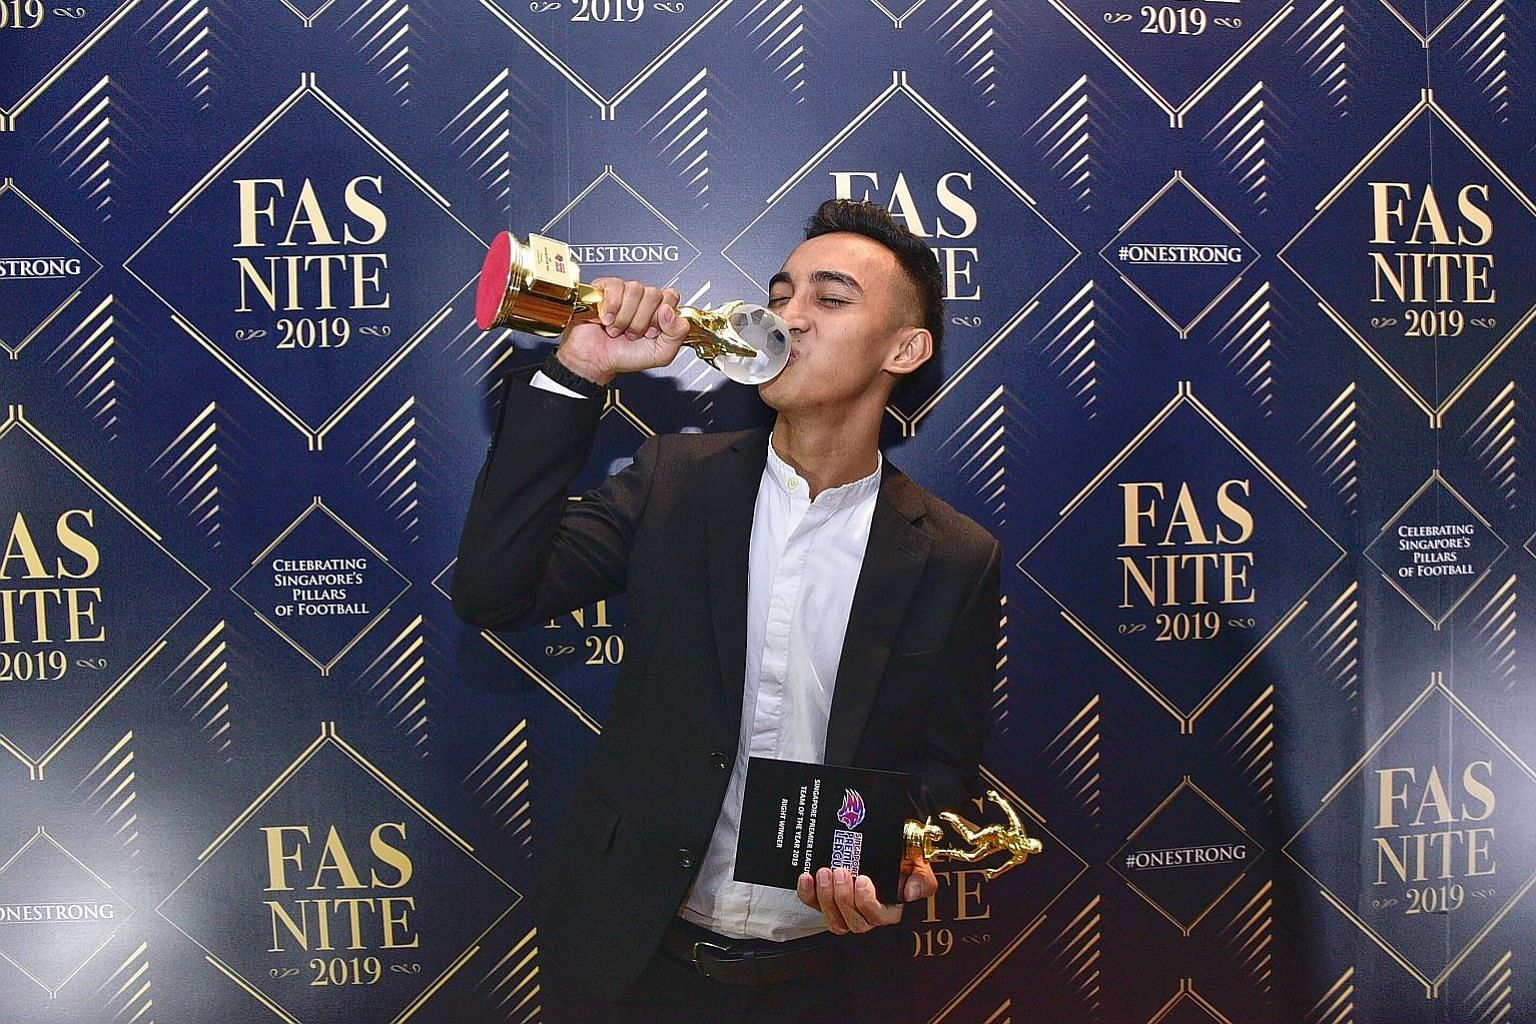 Hougang's Faris Ramli celebrating with his two trophies for winning the Player of the Year award and being named in the SPL Team of the Year at yesterday's FAS Nite 2019. ST PHOTOS: DESMOND WEE